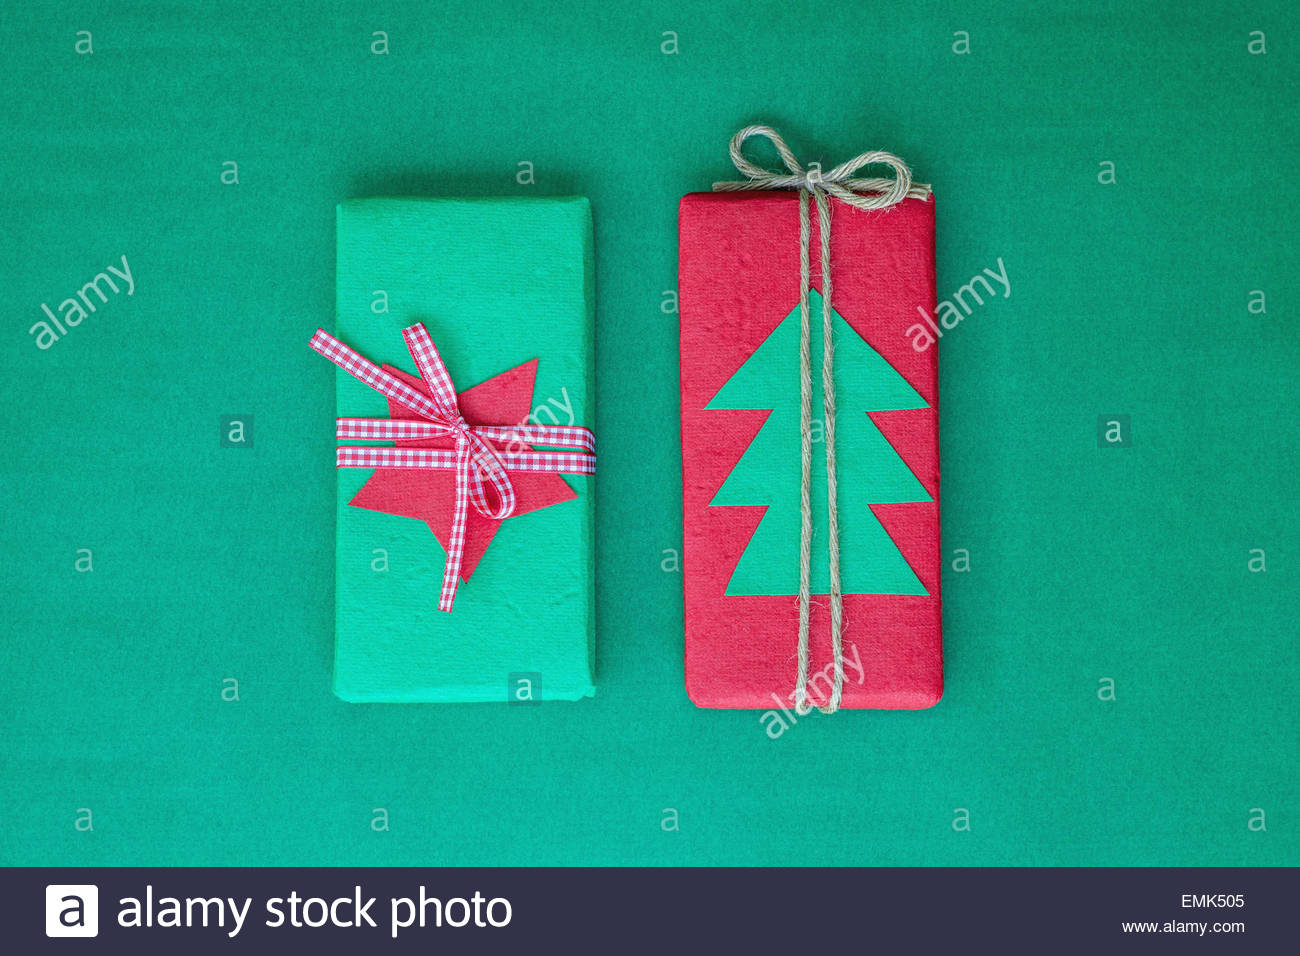 Christmas Gifts Stock Photos & Christmas Gifts Stock Images - Alamy